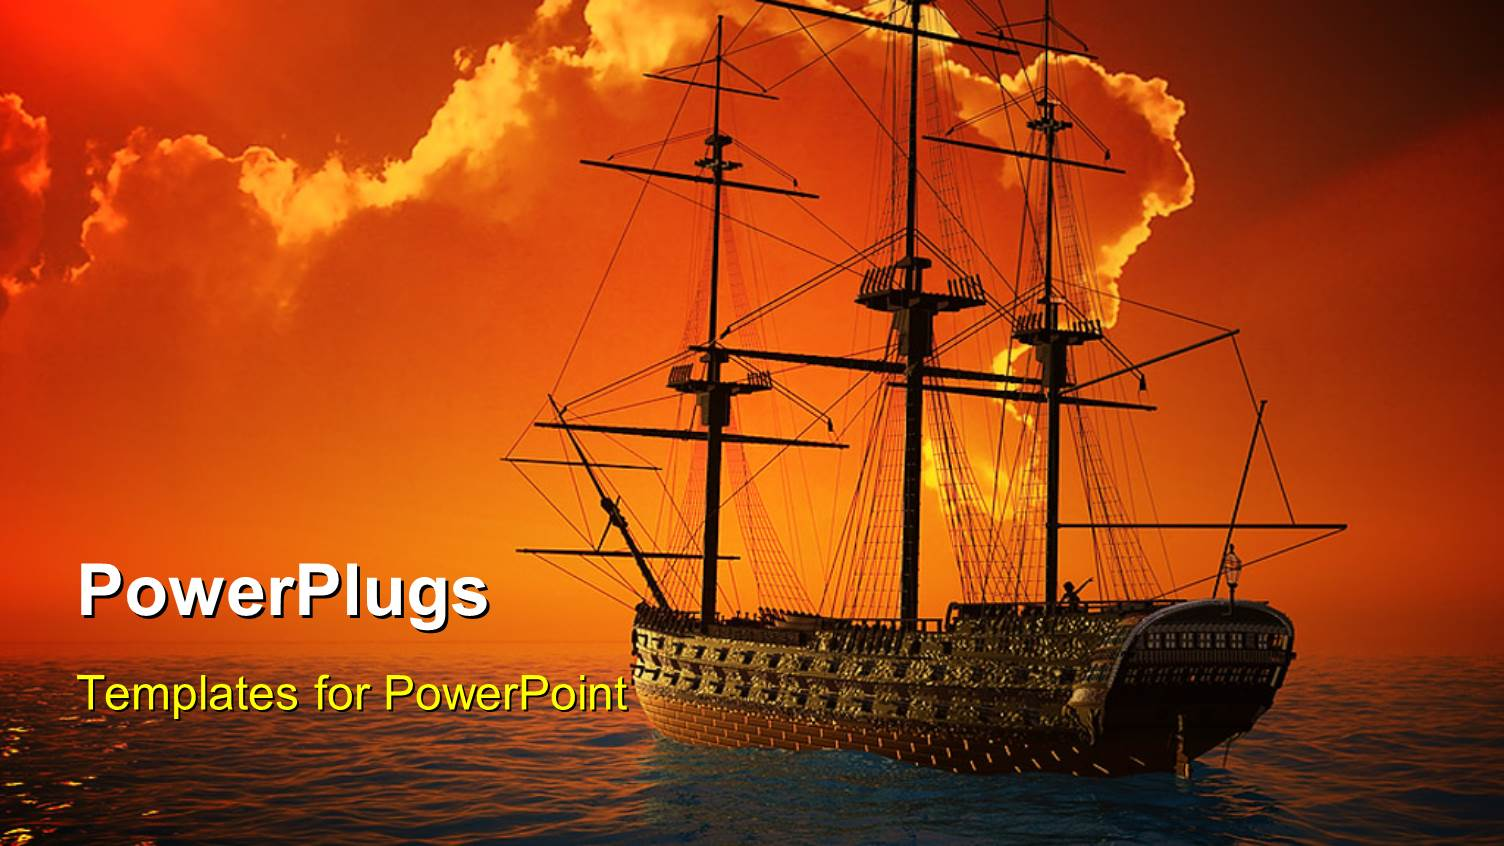 5000 ship powerpoint templates w ship themed backgrounds elegant ppt theme enhanced with a ship sailing in the sea with clouds in background template size toneelgroepblik Gallery